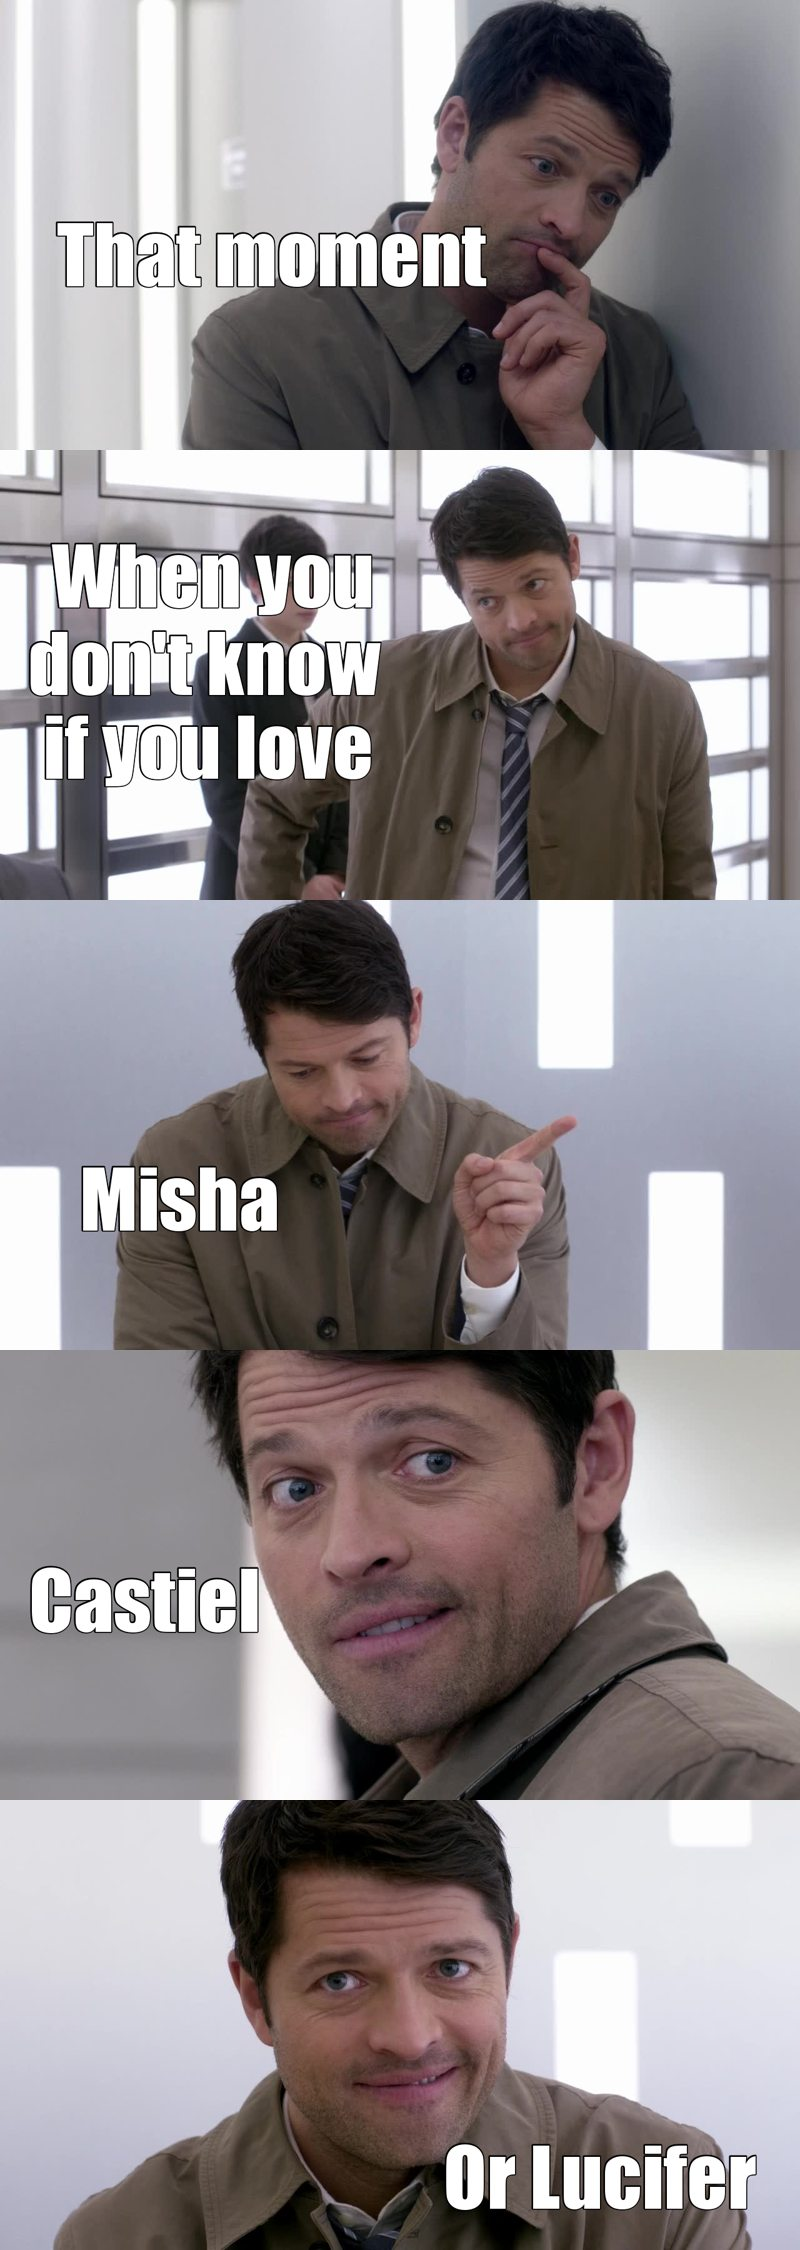 I am so confused, Misha is an amazing actor, I didn't know who vote for the best character of the episode